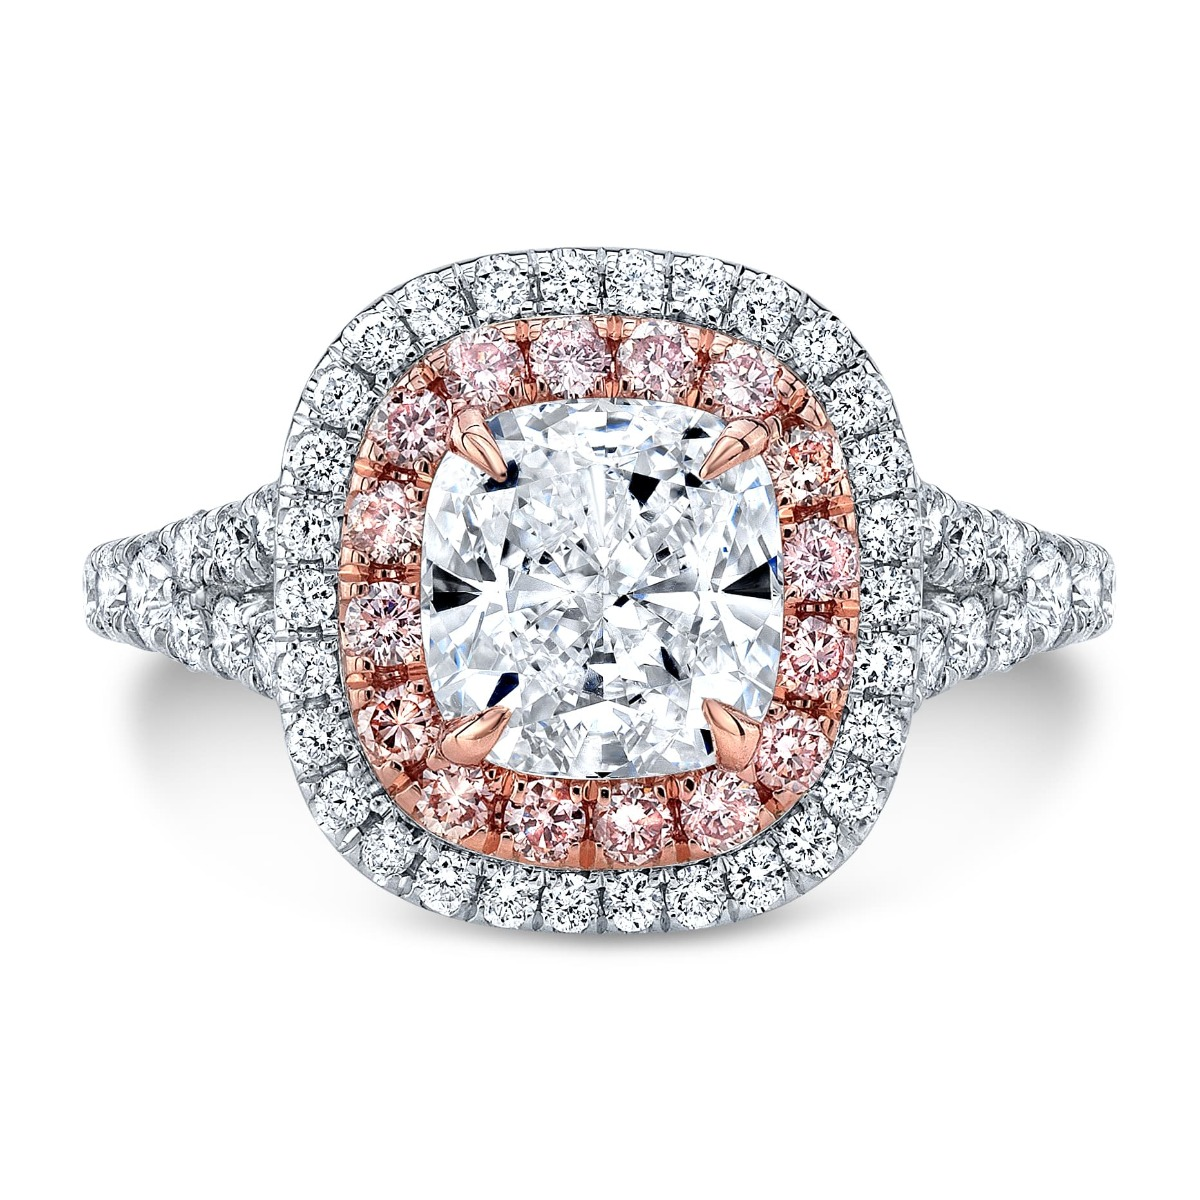 Unique Double Halo Cushion Engagement Ring With Pink Diamonds